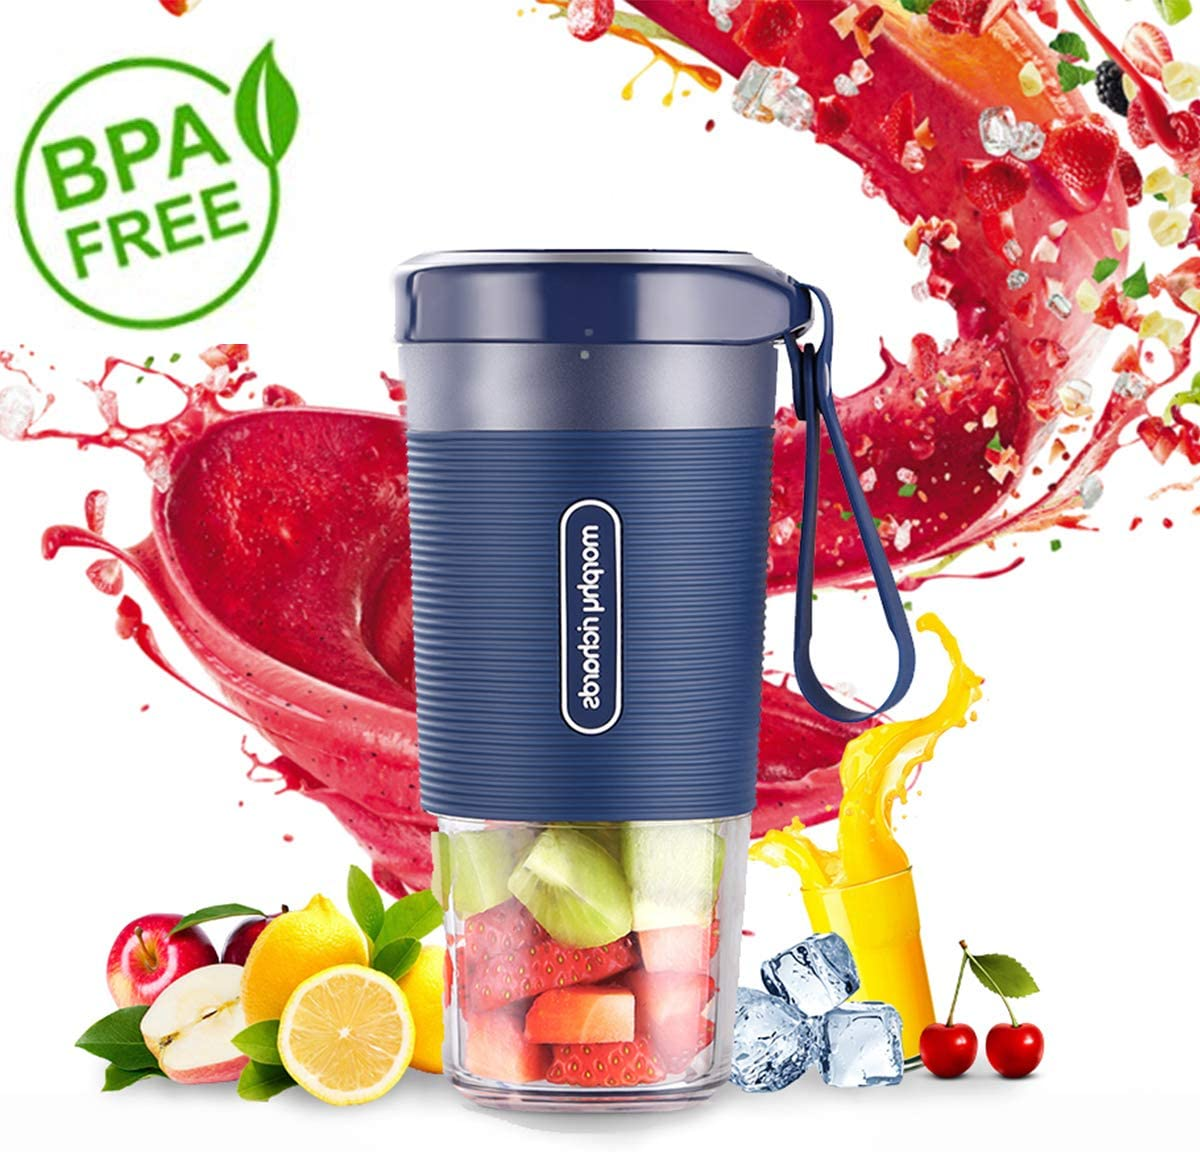 Portable Blender, Mini Personal Blender,Small Smoothie Blender, Fruit Juicer Mixer for Home Outdoor Travel Office with USB Rechargeable,IP68 Waterproof, BPA Free,350ml Luxury Blue